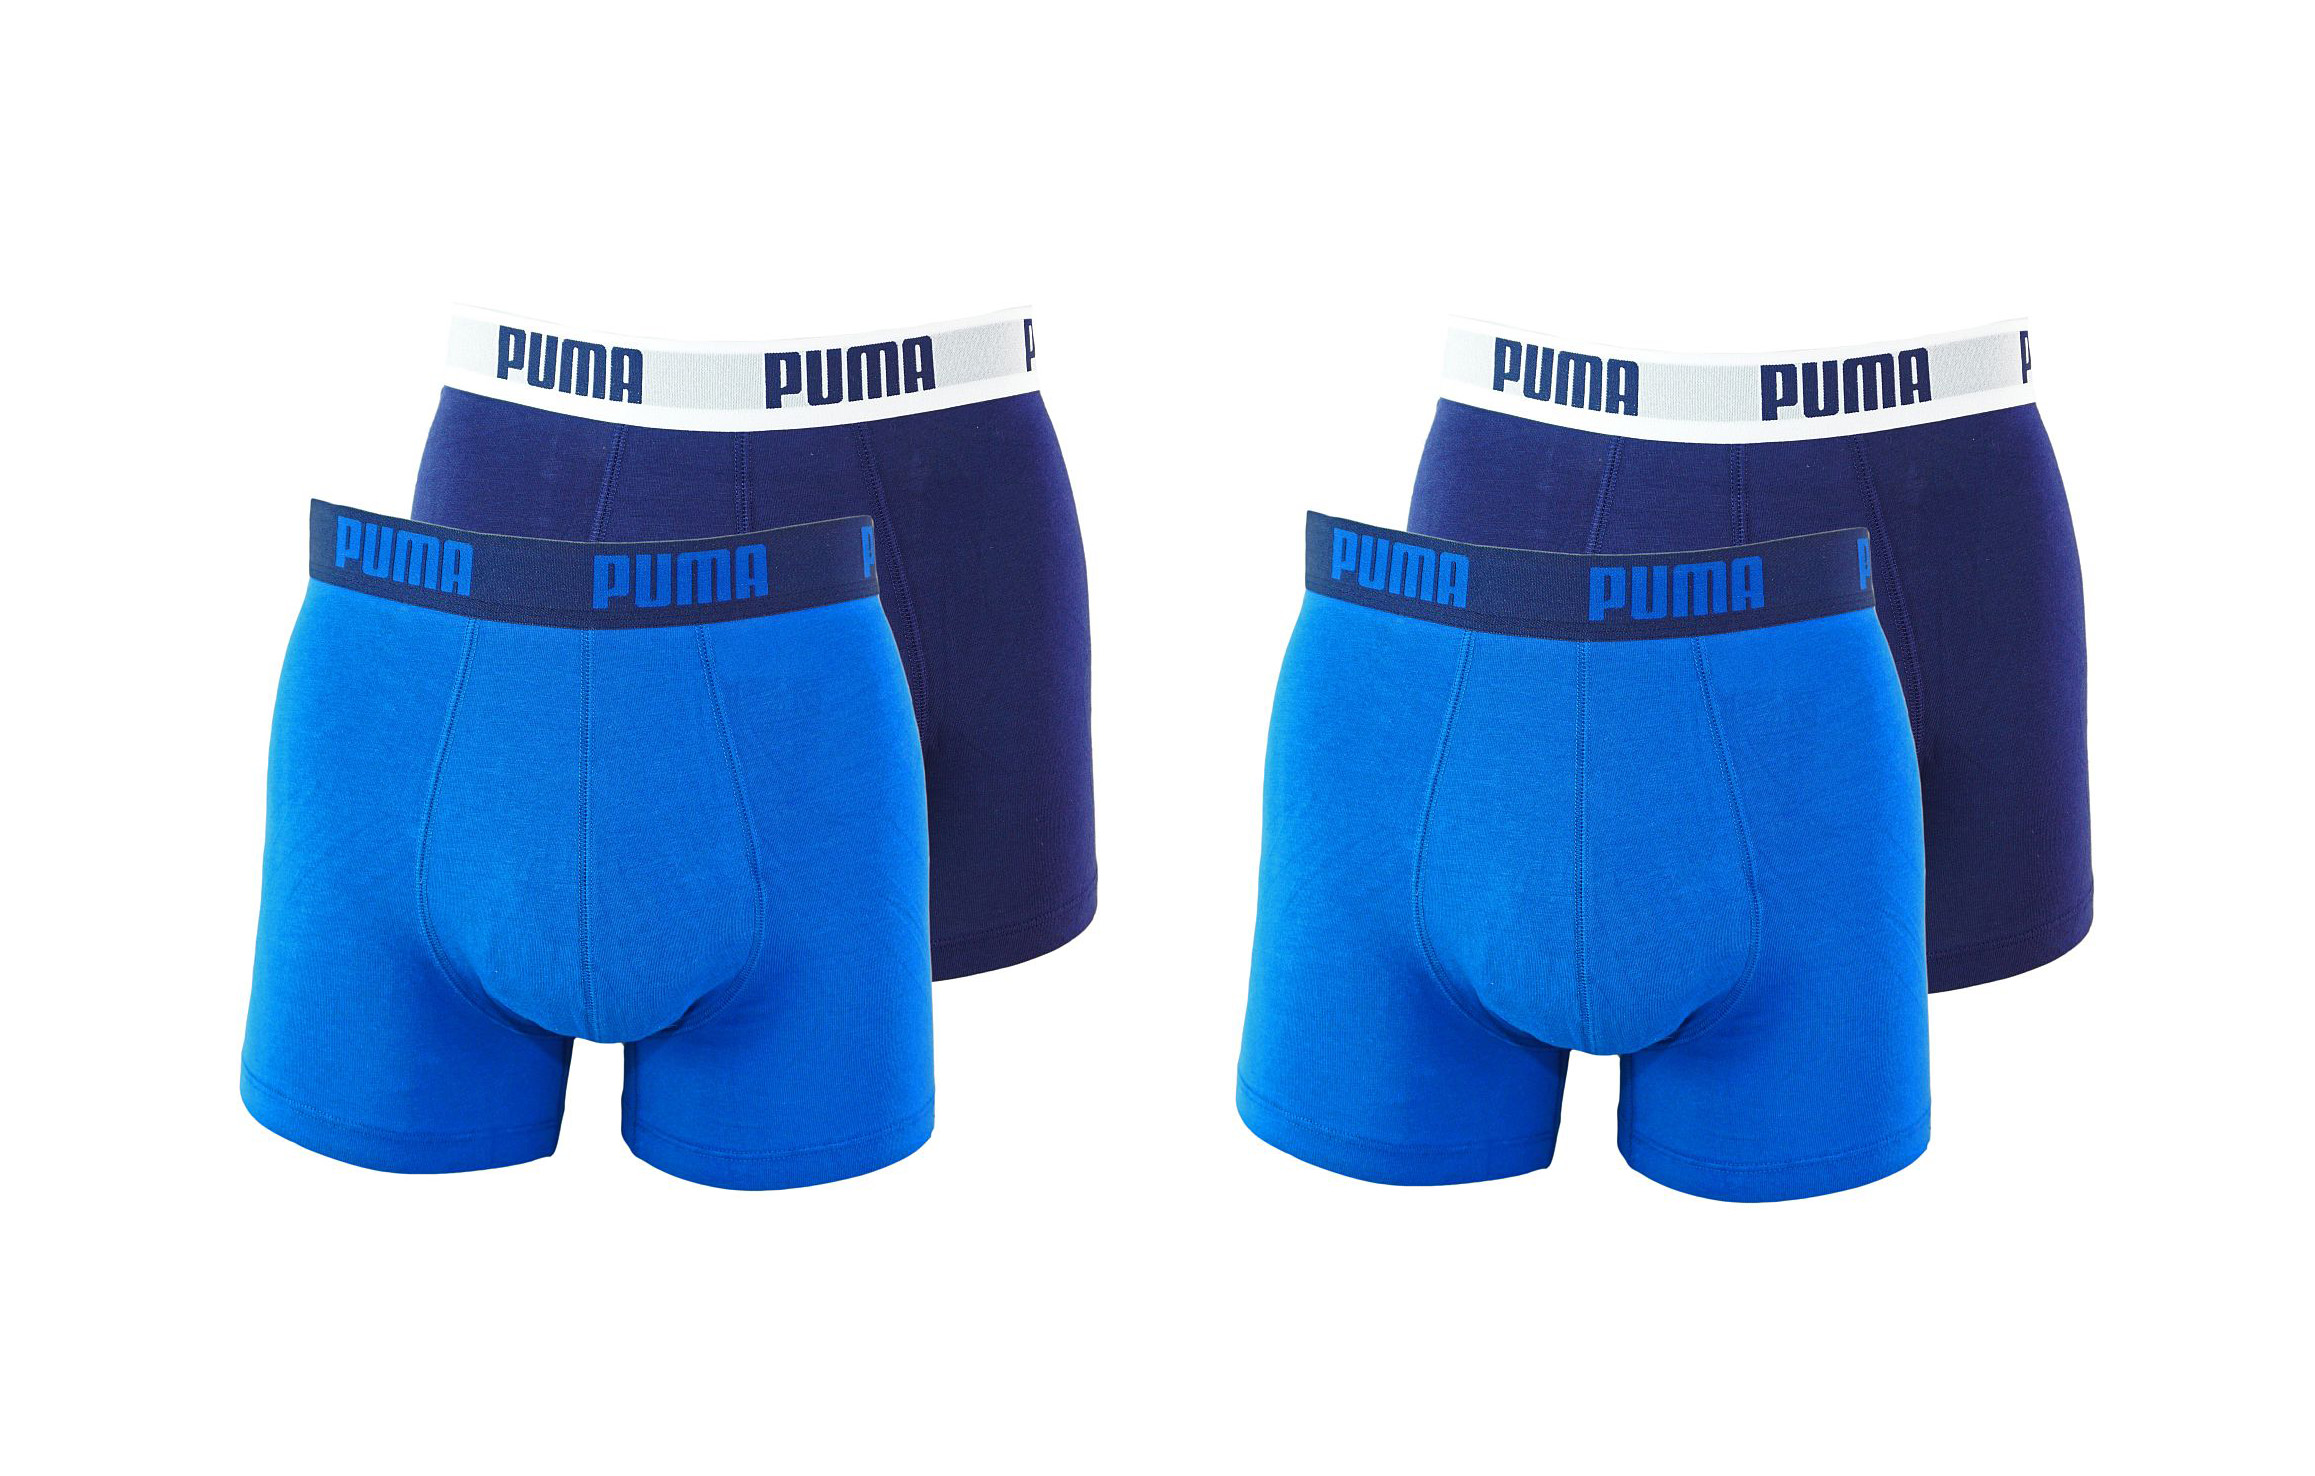 PUMA Shorts Unterhosen 2 x 2er Pack Boxer 521015001 420 020 true blue SF17-PMS2